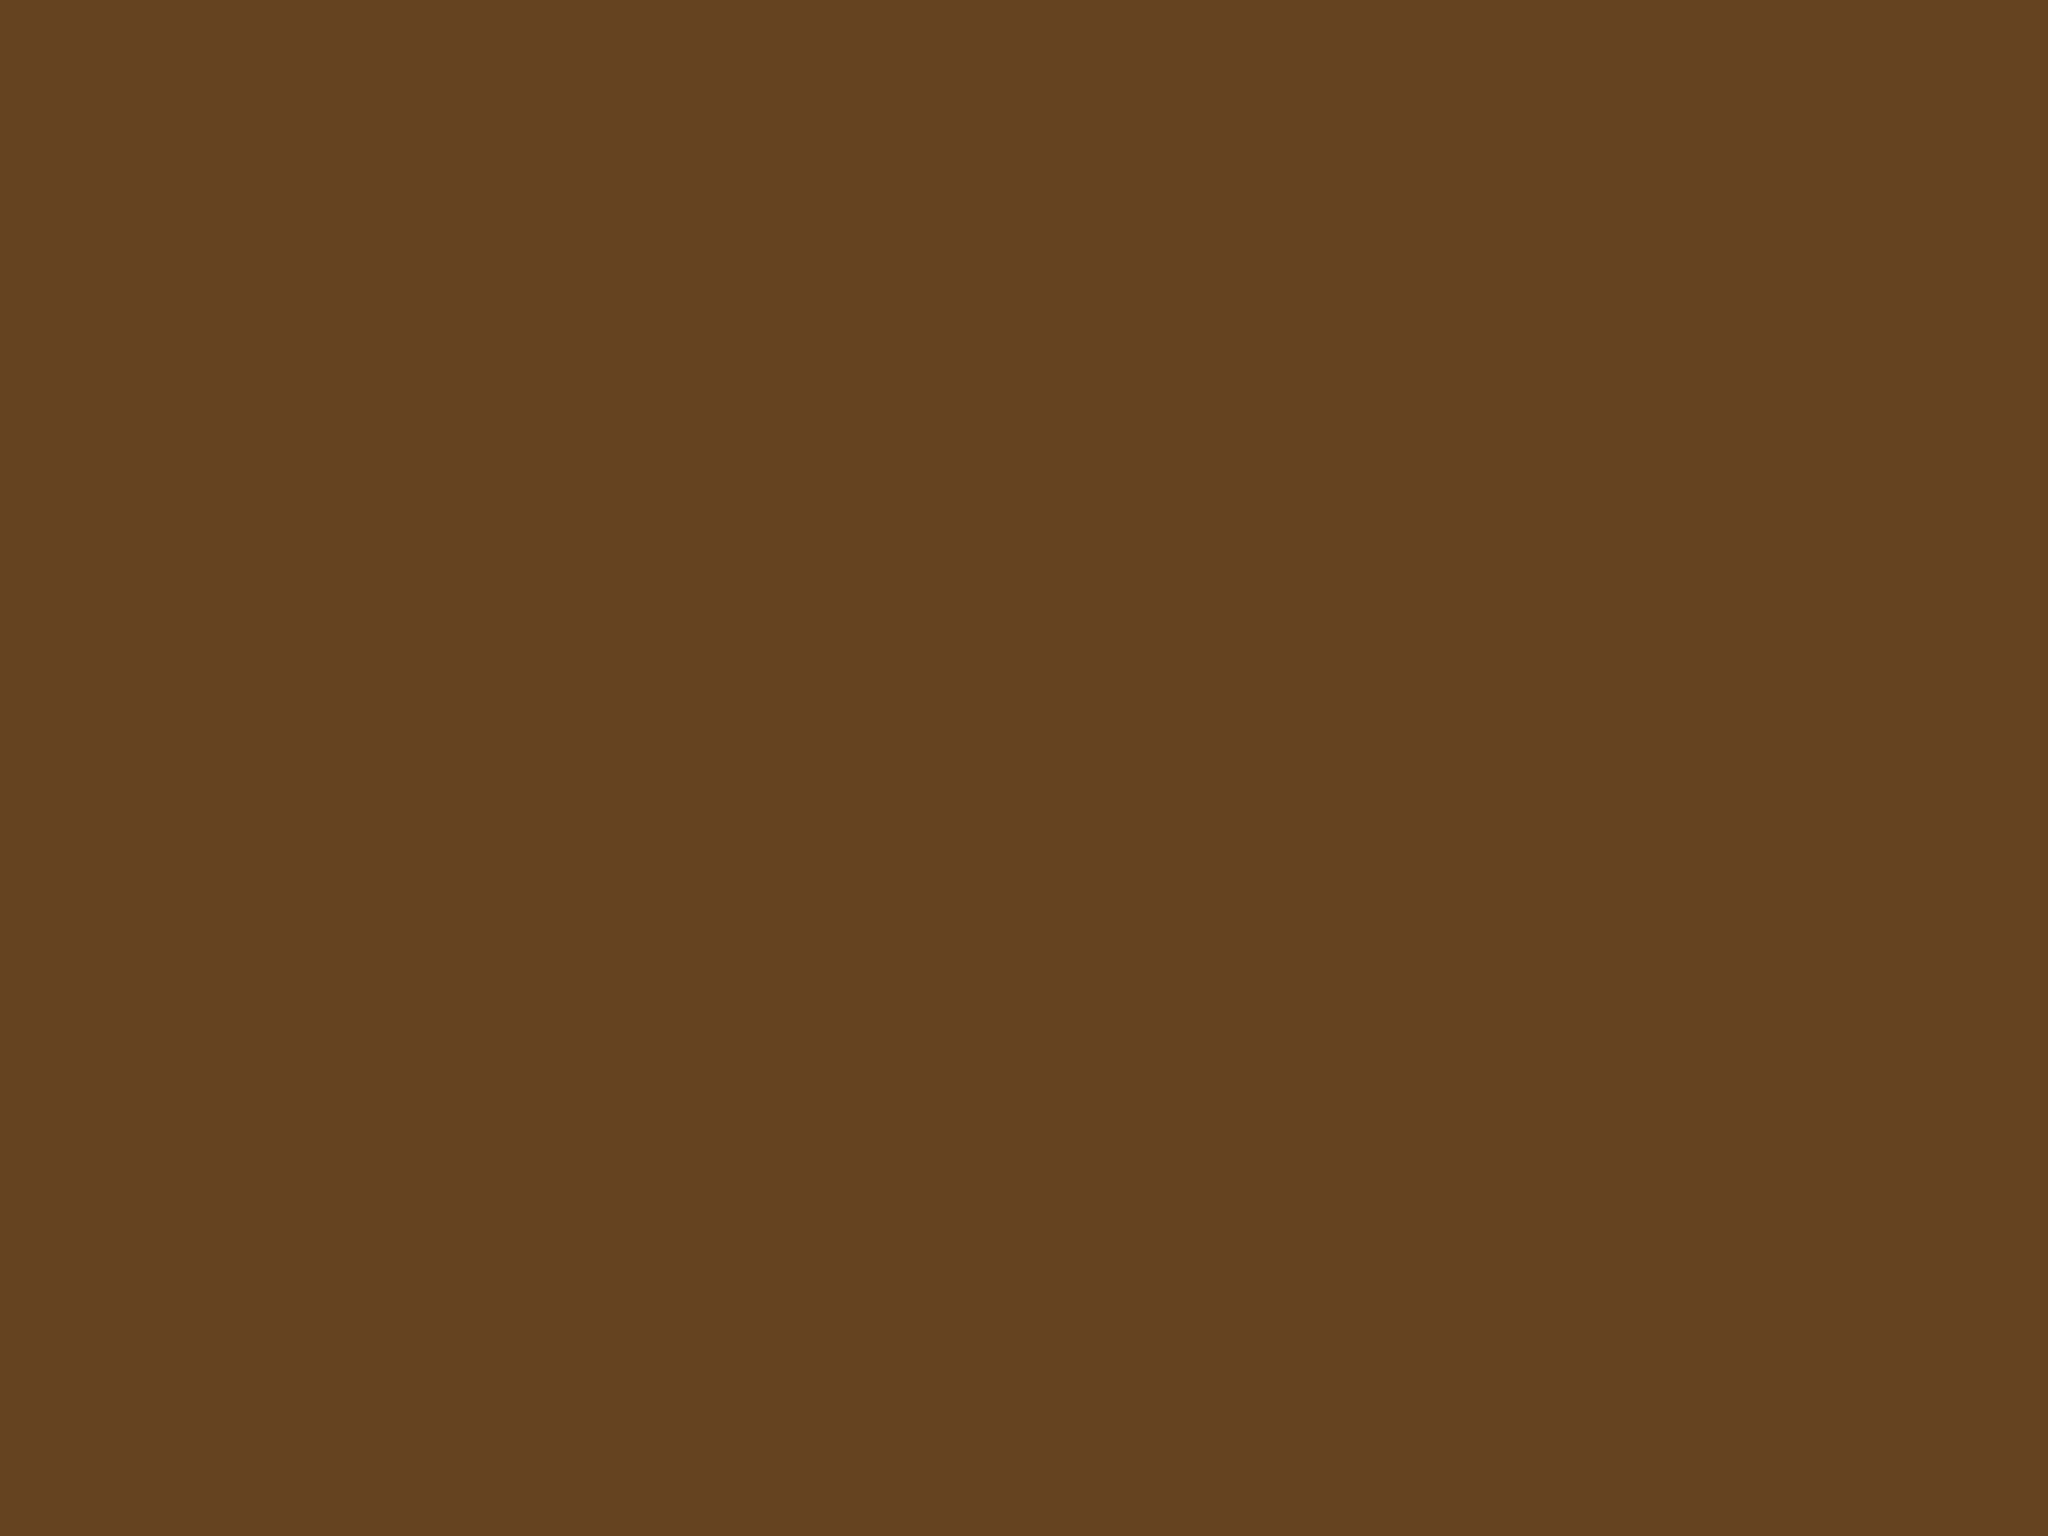 2048x1536 Dark Brown Solid Color Background